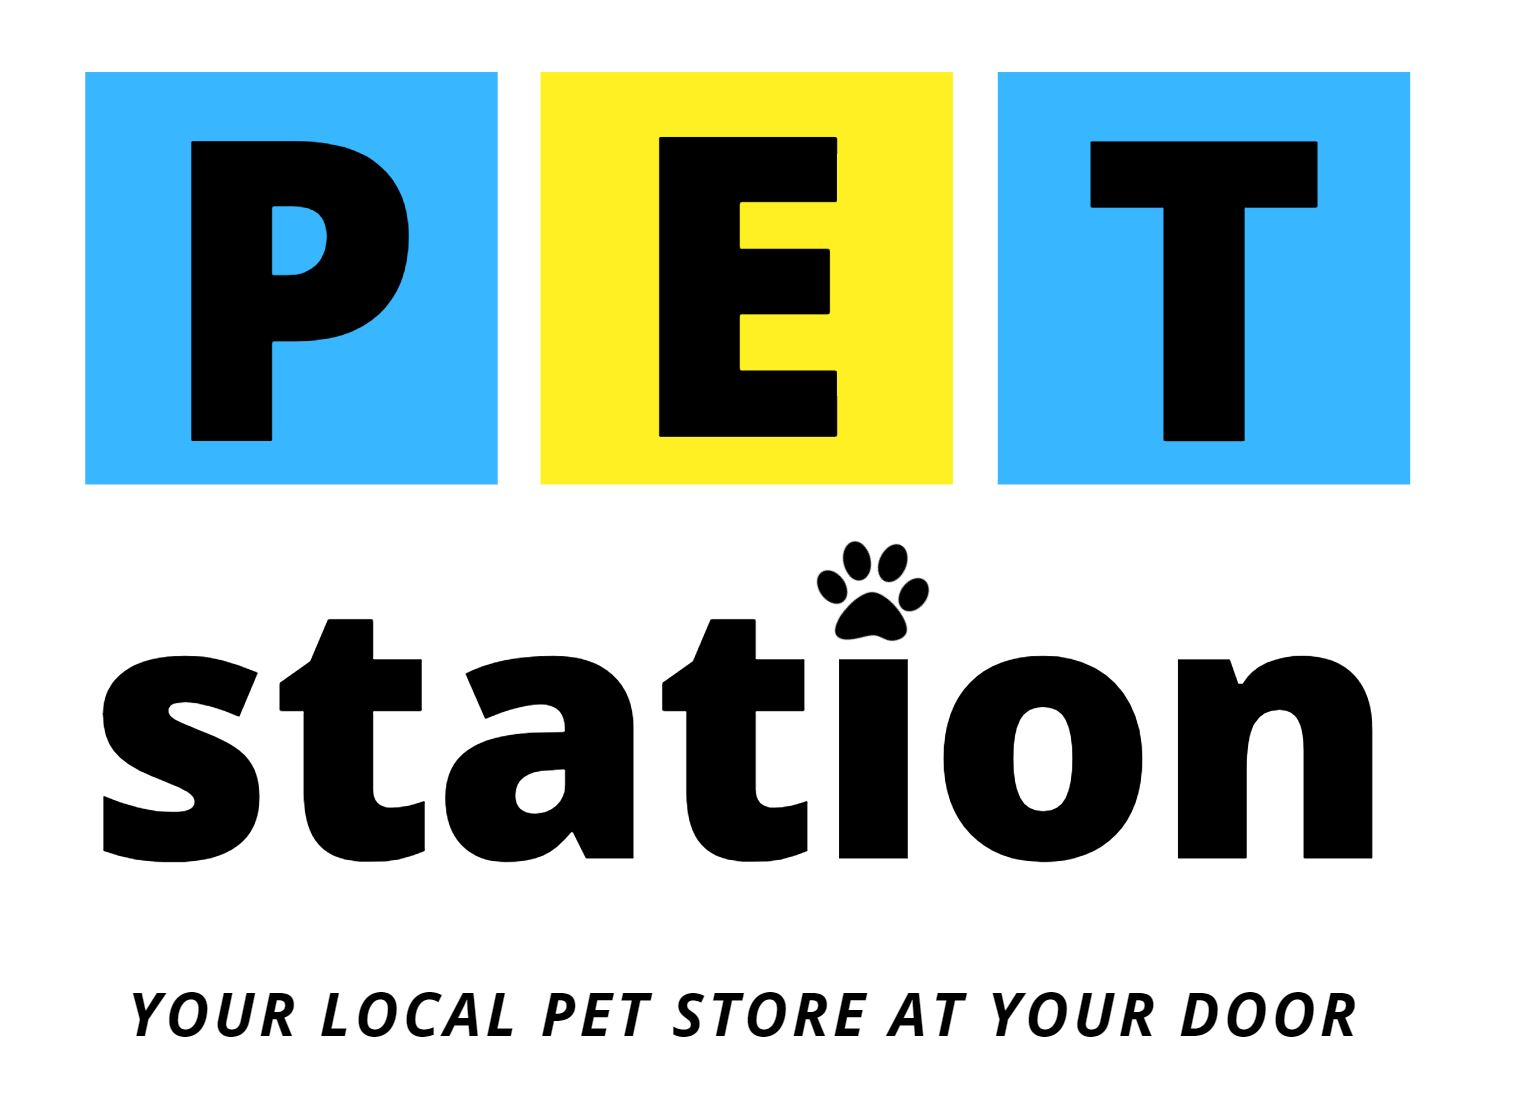 Pet Station your local pet store at your door